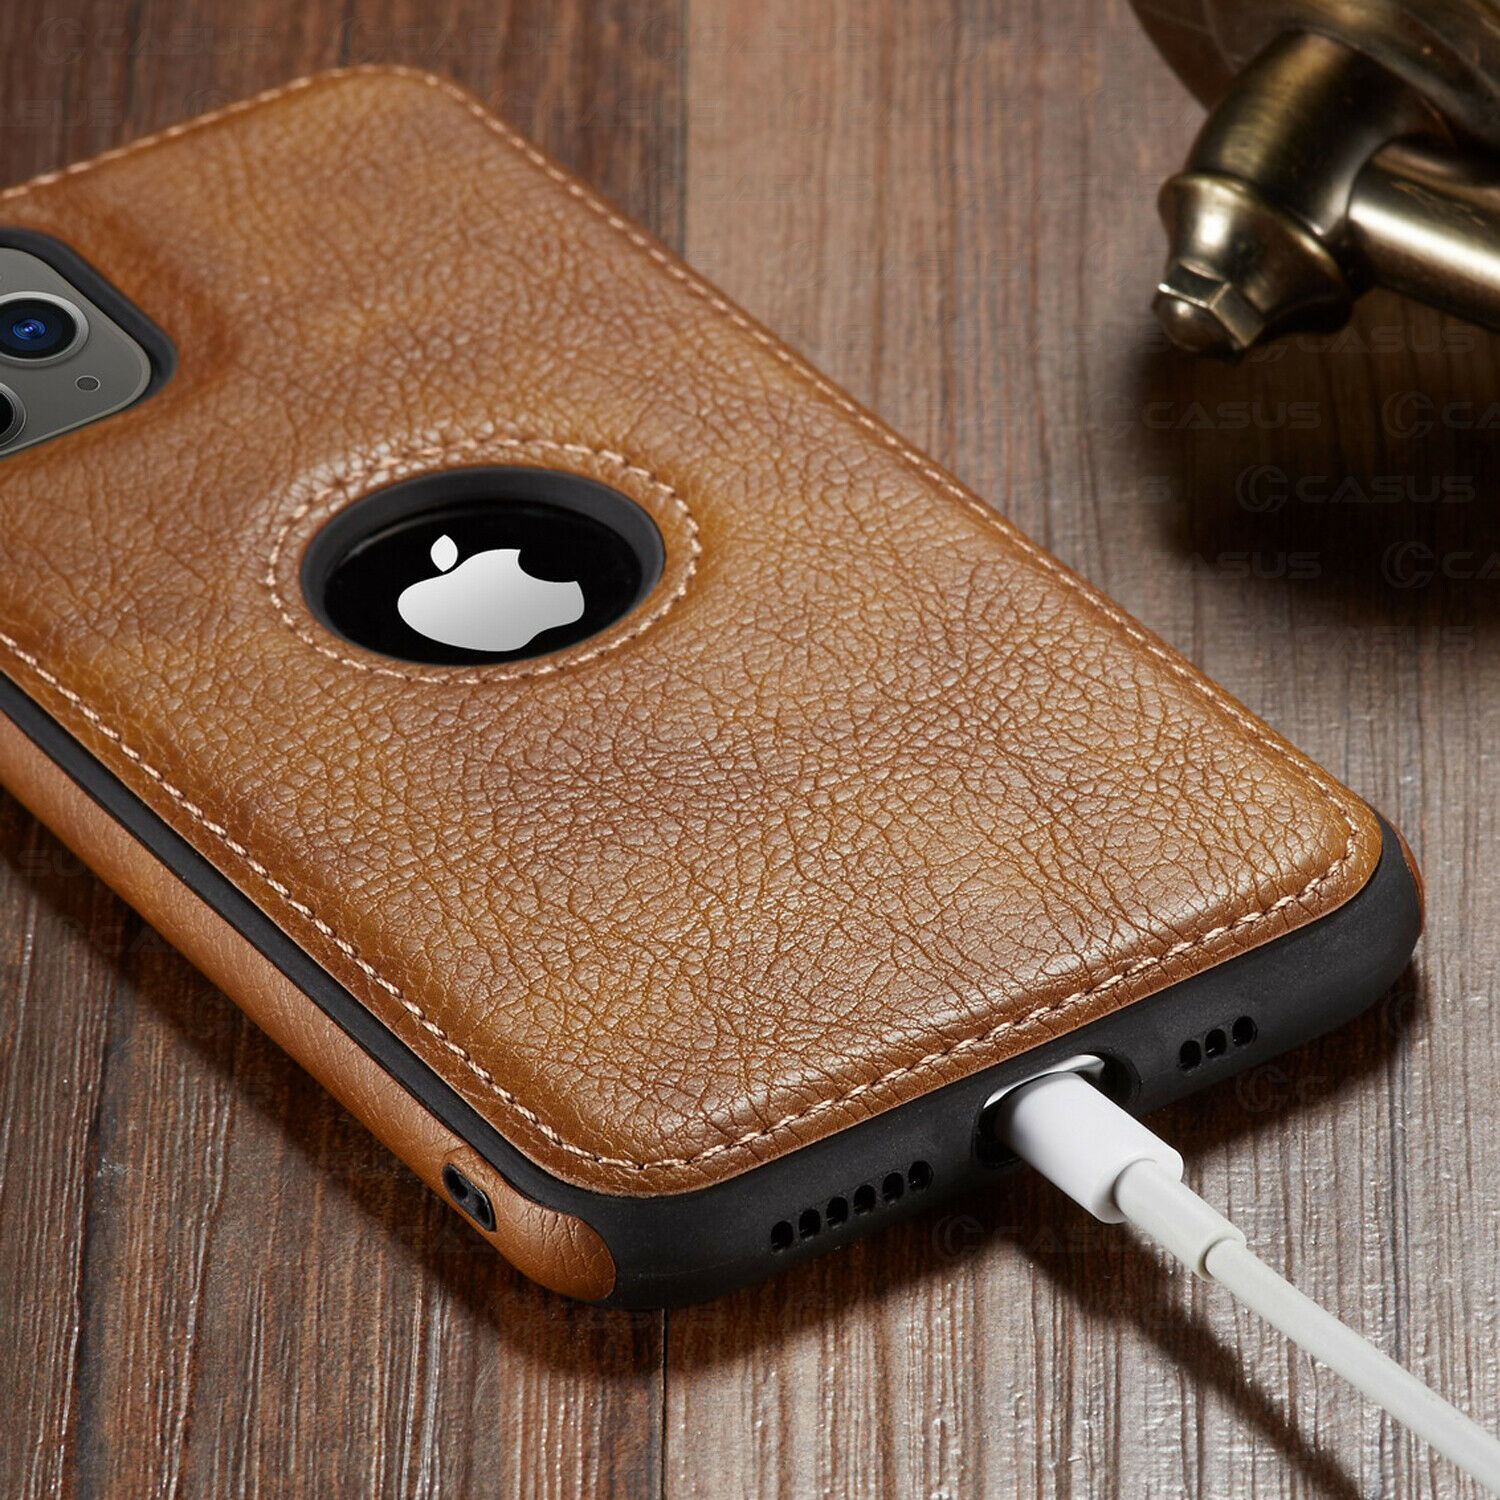 Voor Iphone 11 11 Pro 11 Pro Max Case Luxe Leather Stiksels Case Cover Voor Iphone 12 Pro Max xr X 8 7 6 6S Plus Case 4